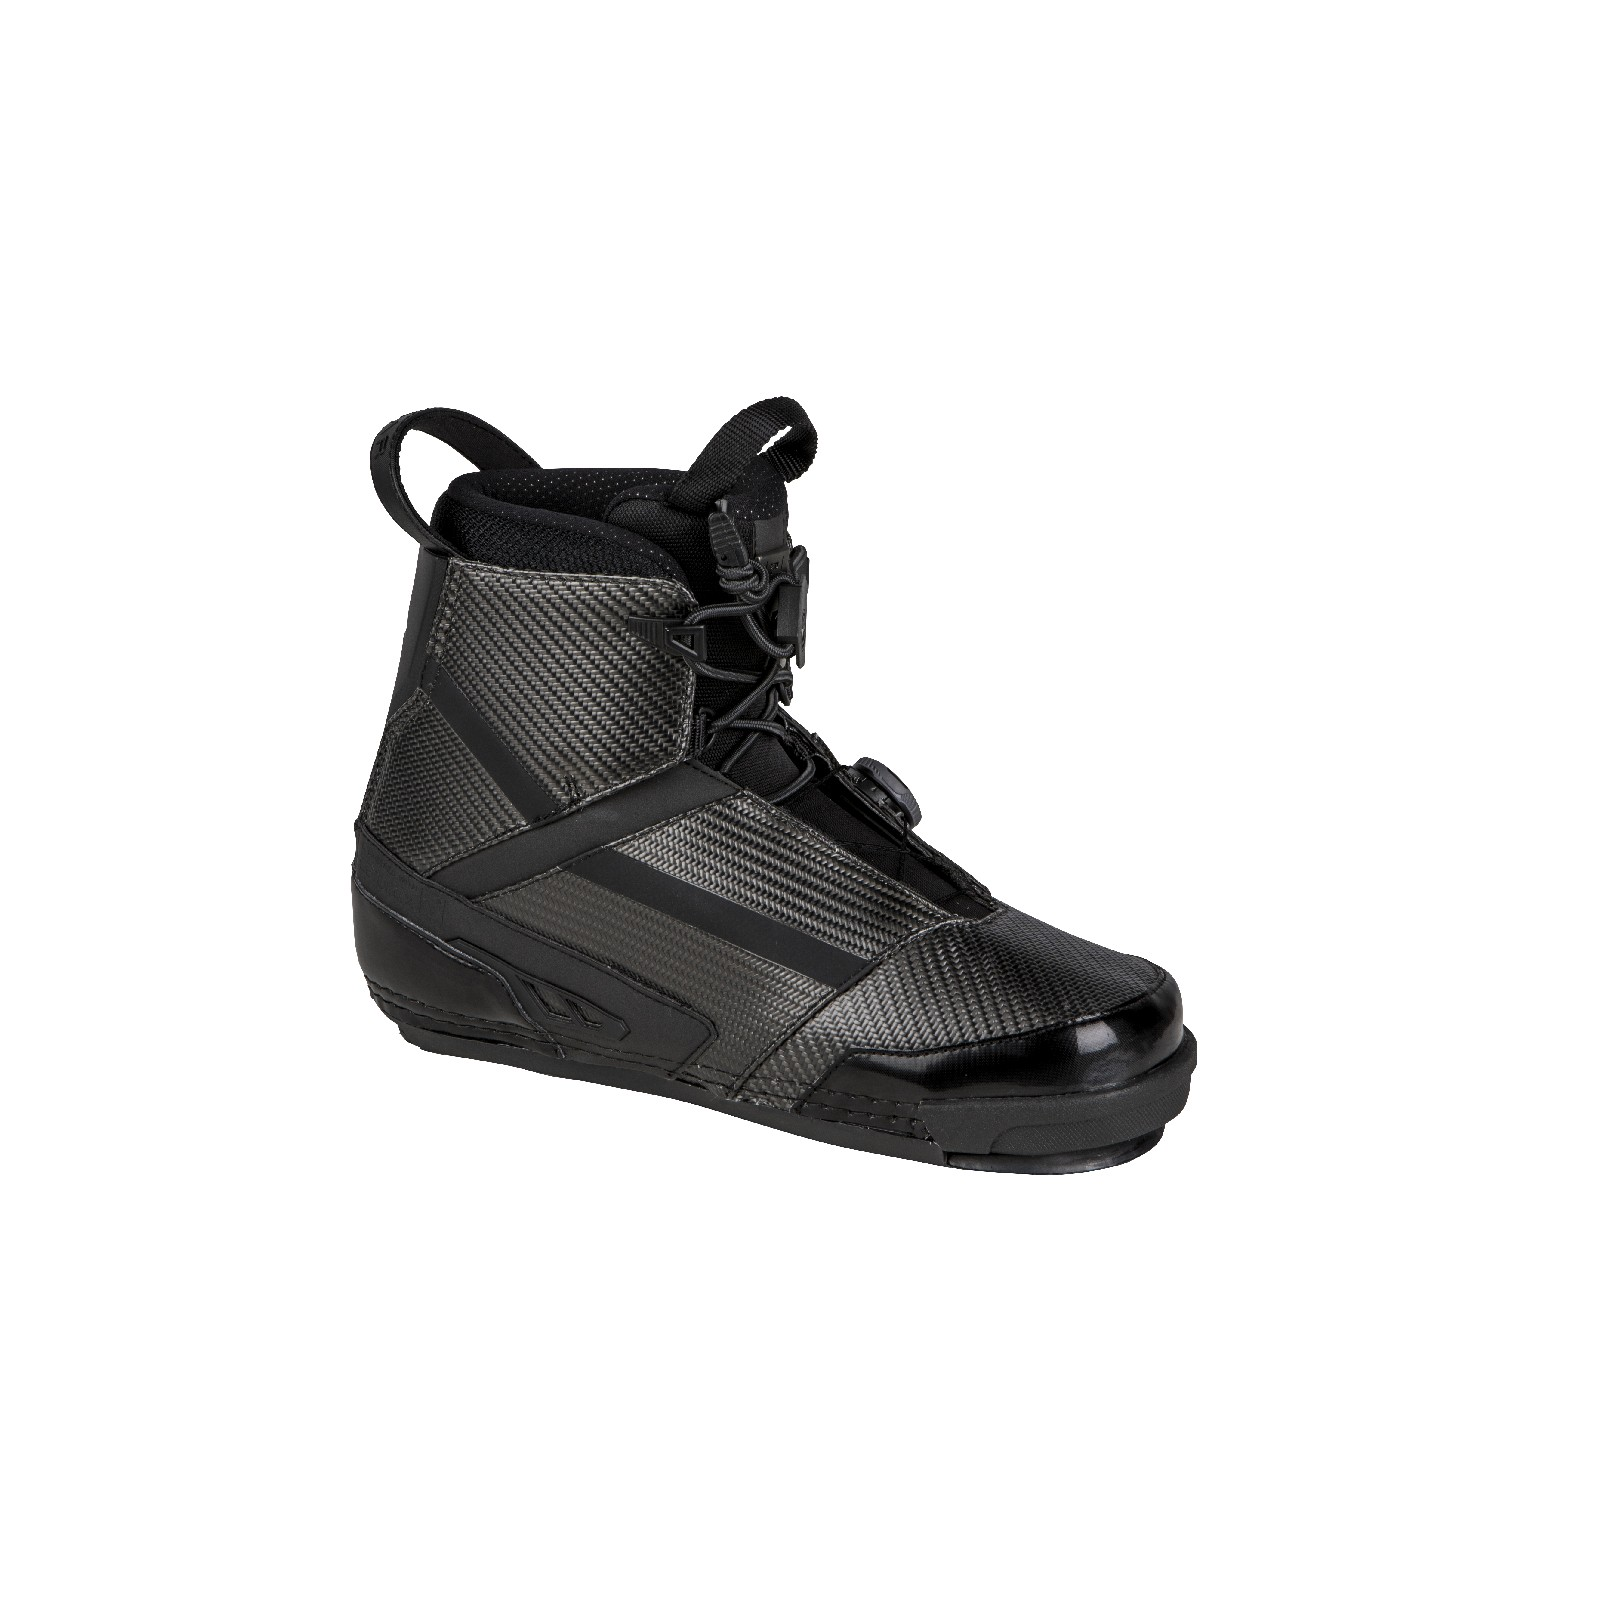 CARBITEX VAPOR BOOT - NO PLATE - LEFT RADAR 2019